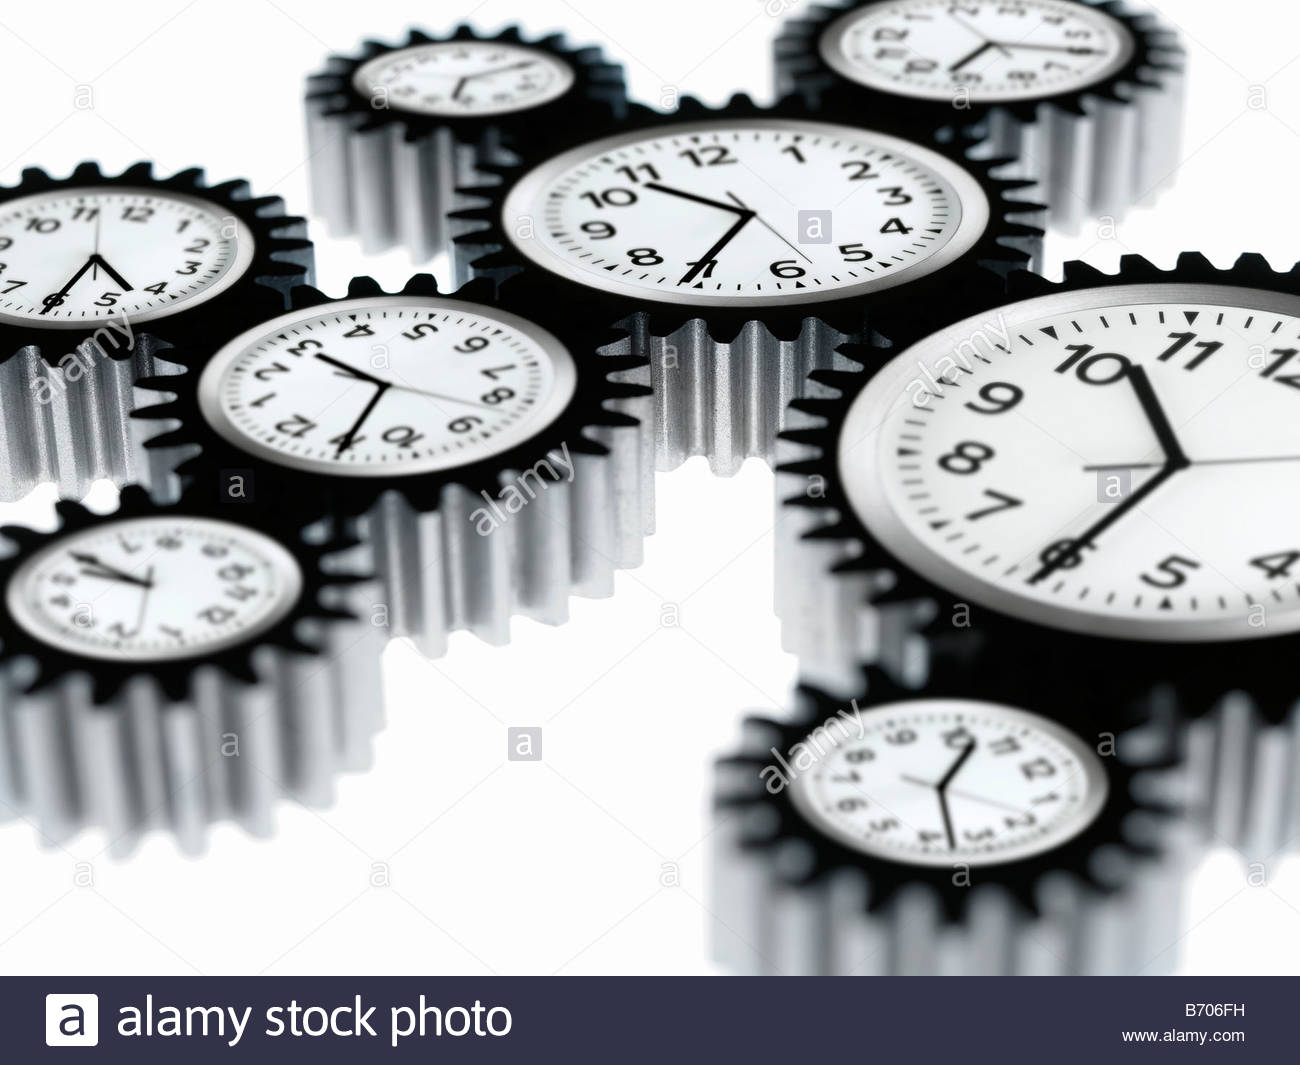 Clocks shaped like cogs - Stock Image